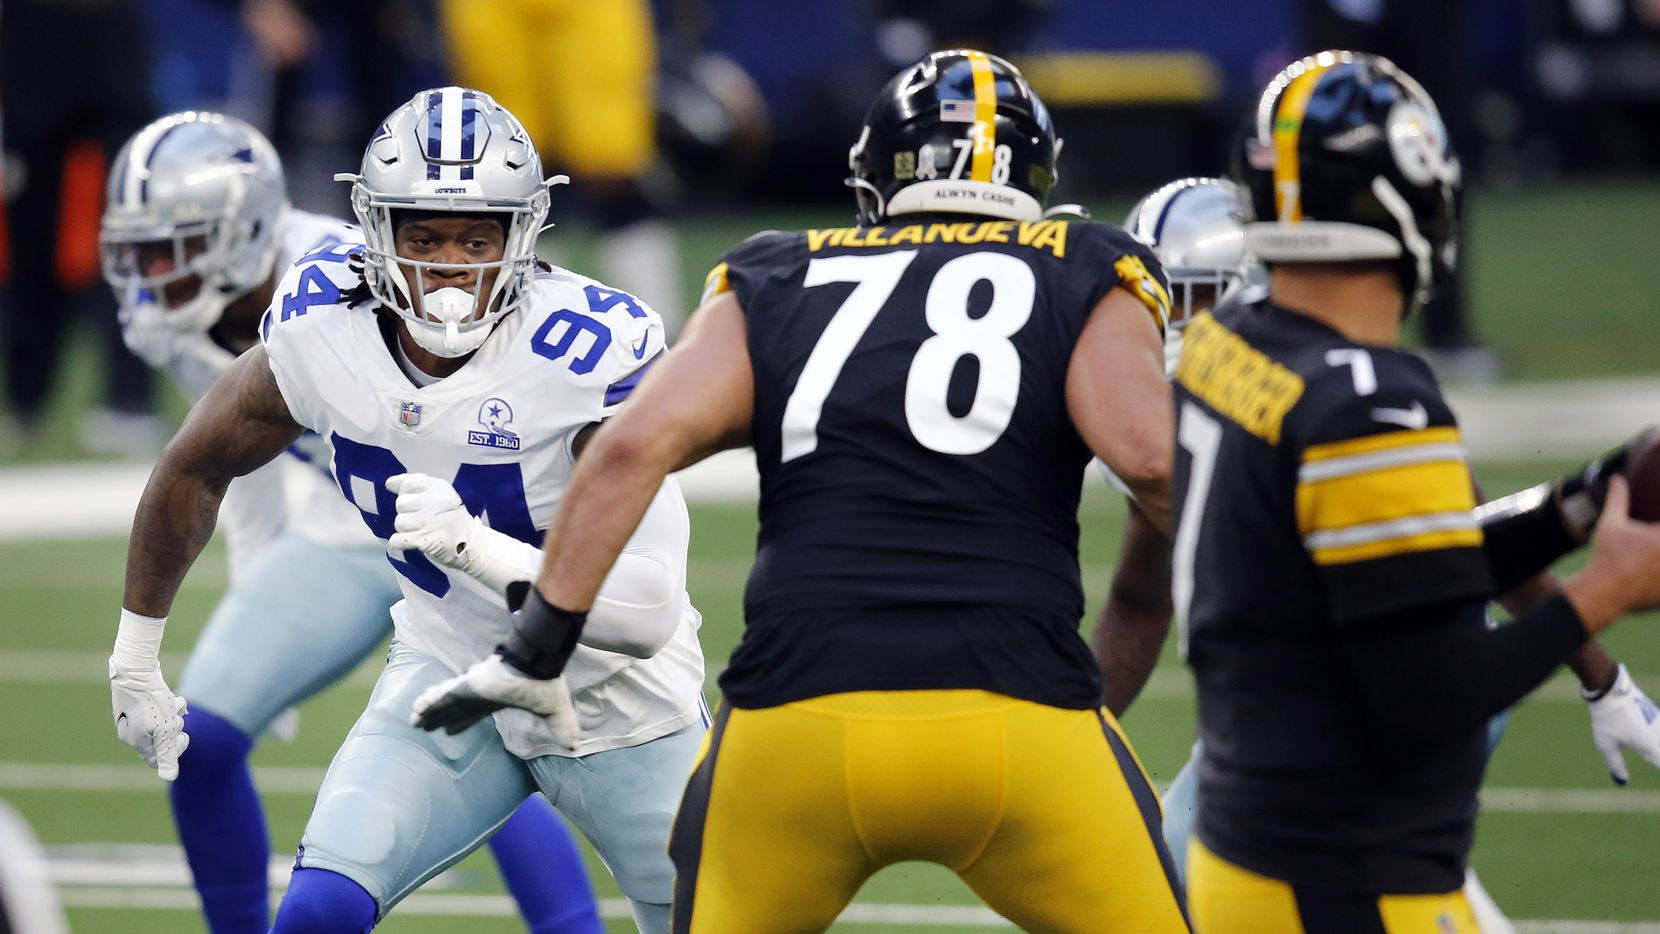 Cowboys defensive end Randy Gregory (94) rushes the passer during the first quarter of a game against the Steelers at AT&T Stadium in Arlington on Sunday, Nov. 8, 2020.